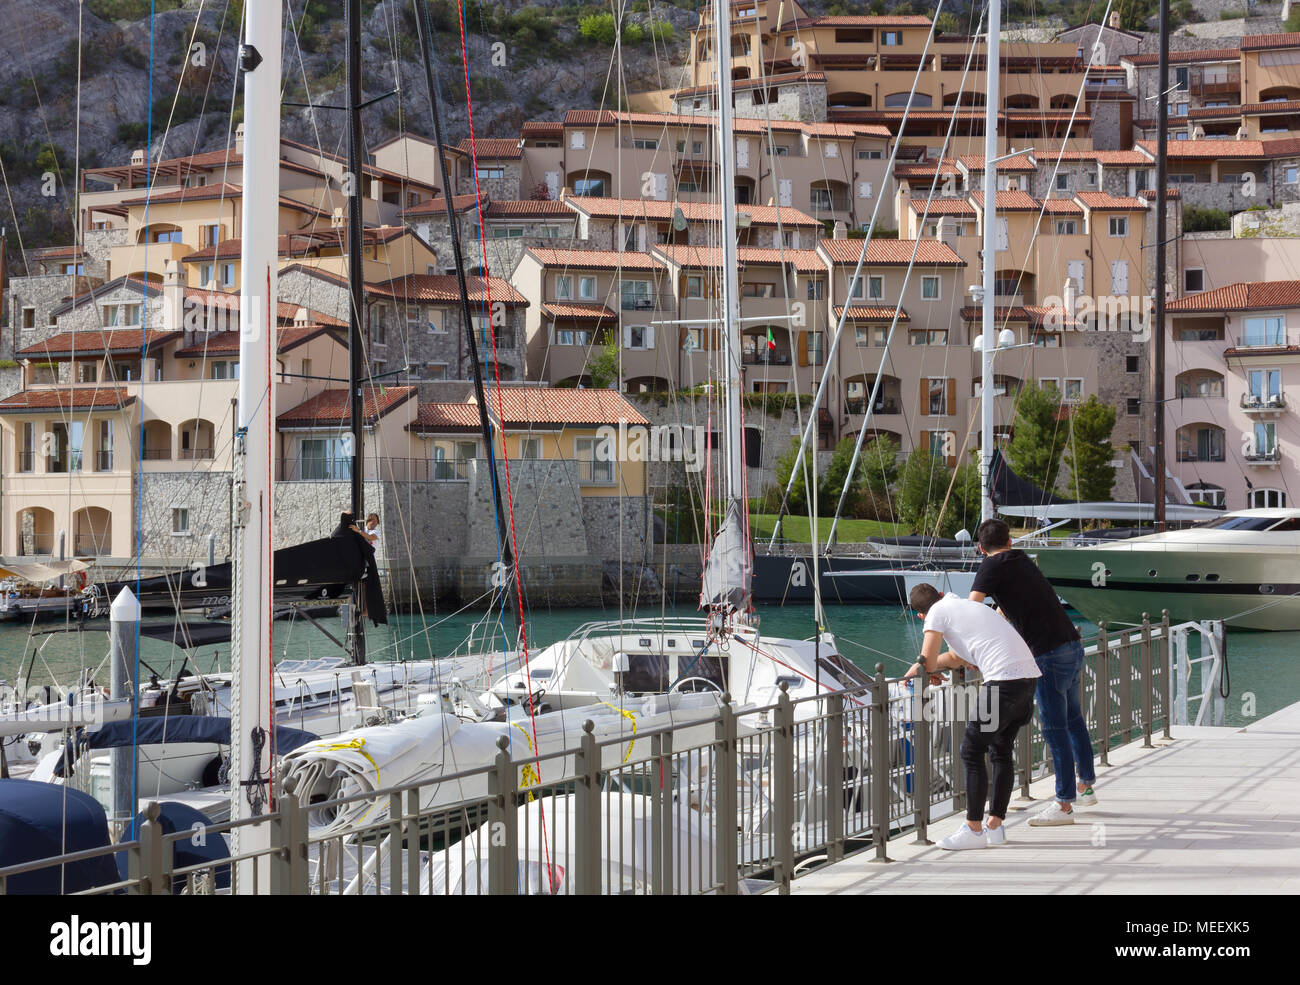 DUINO AURISINA, Italy - April 14, 2018: Two boys leant against a railing at the marina in Portopicclo, near Trieste, Italy - Stock Image